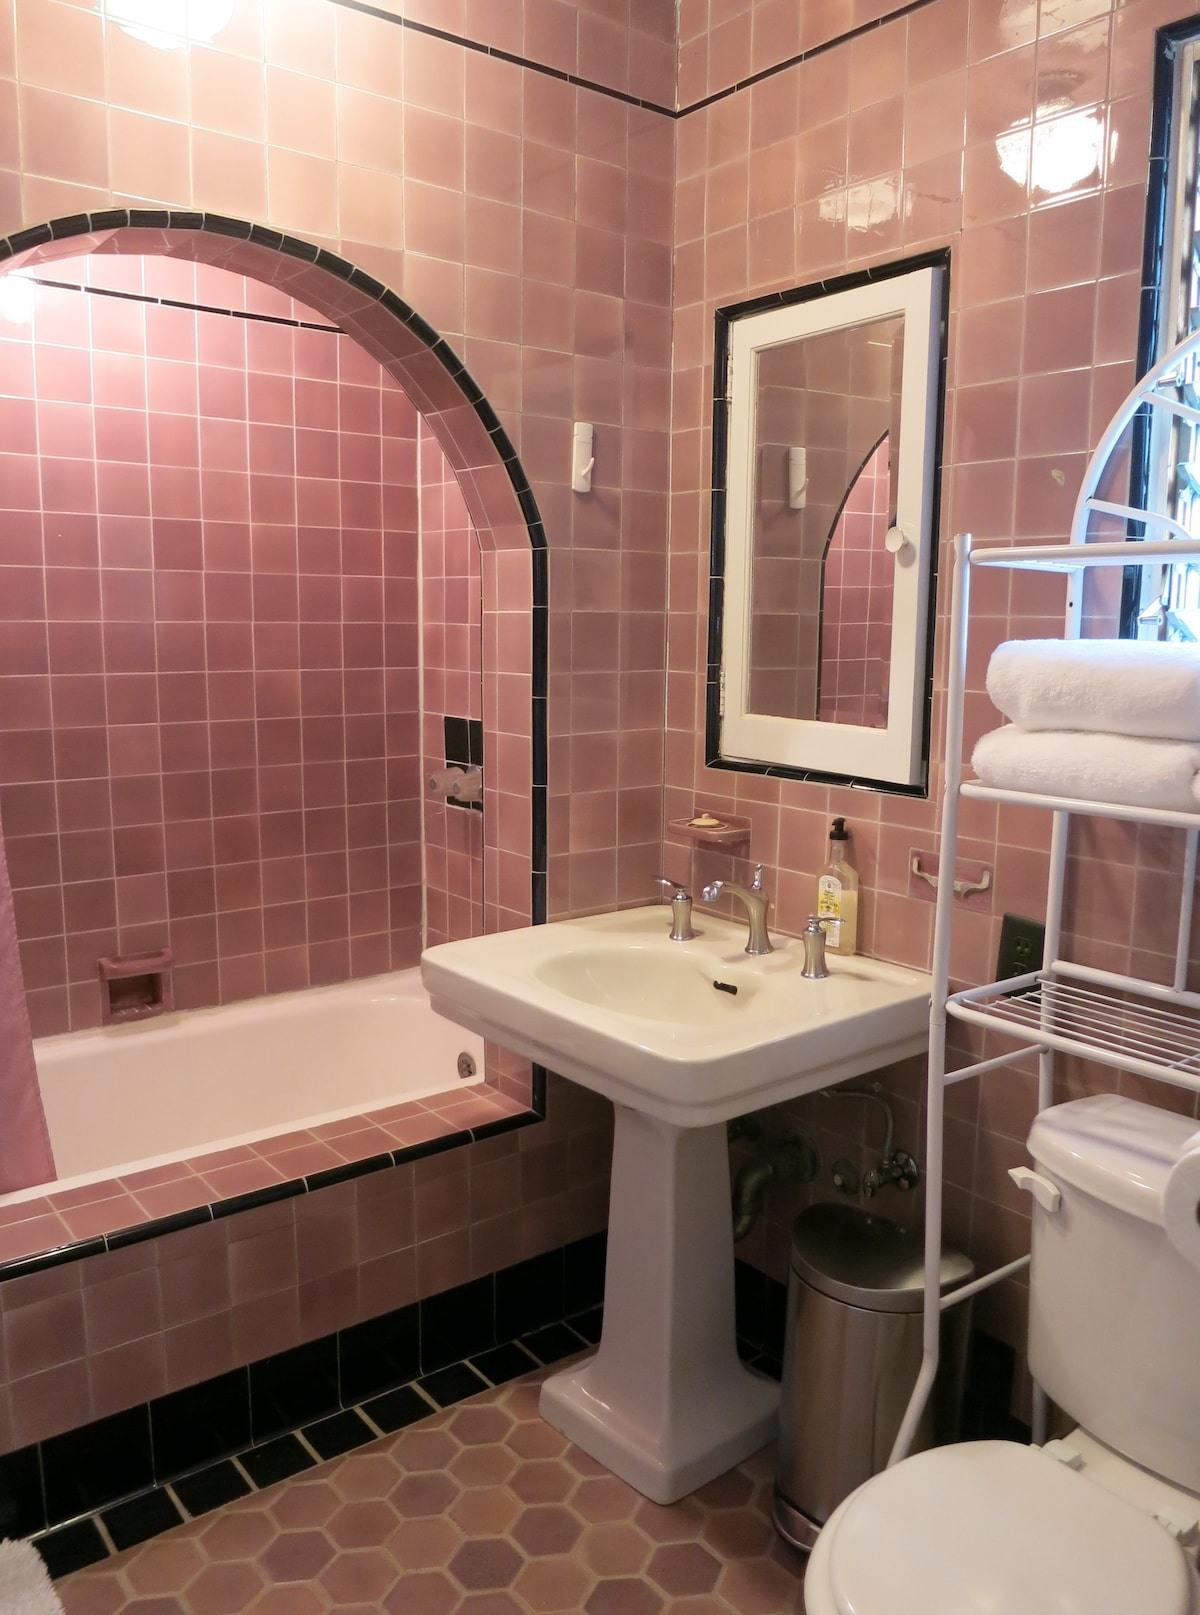 Private 1920's Bathroom with Rain Shower